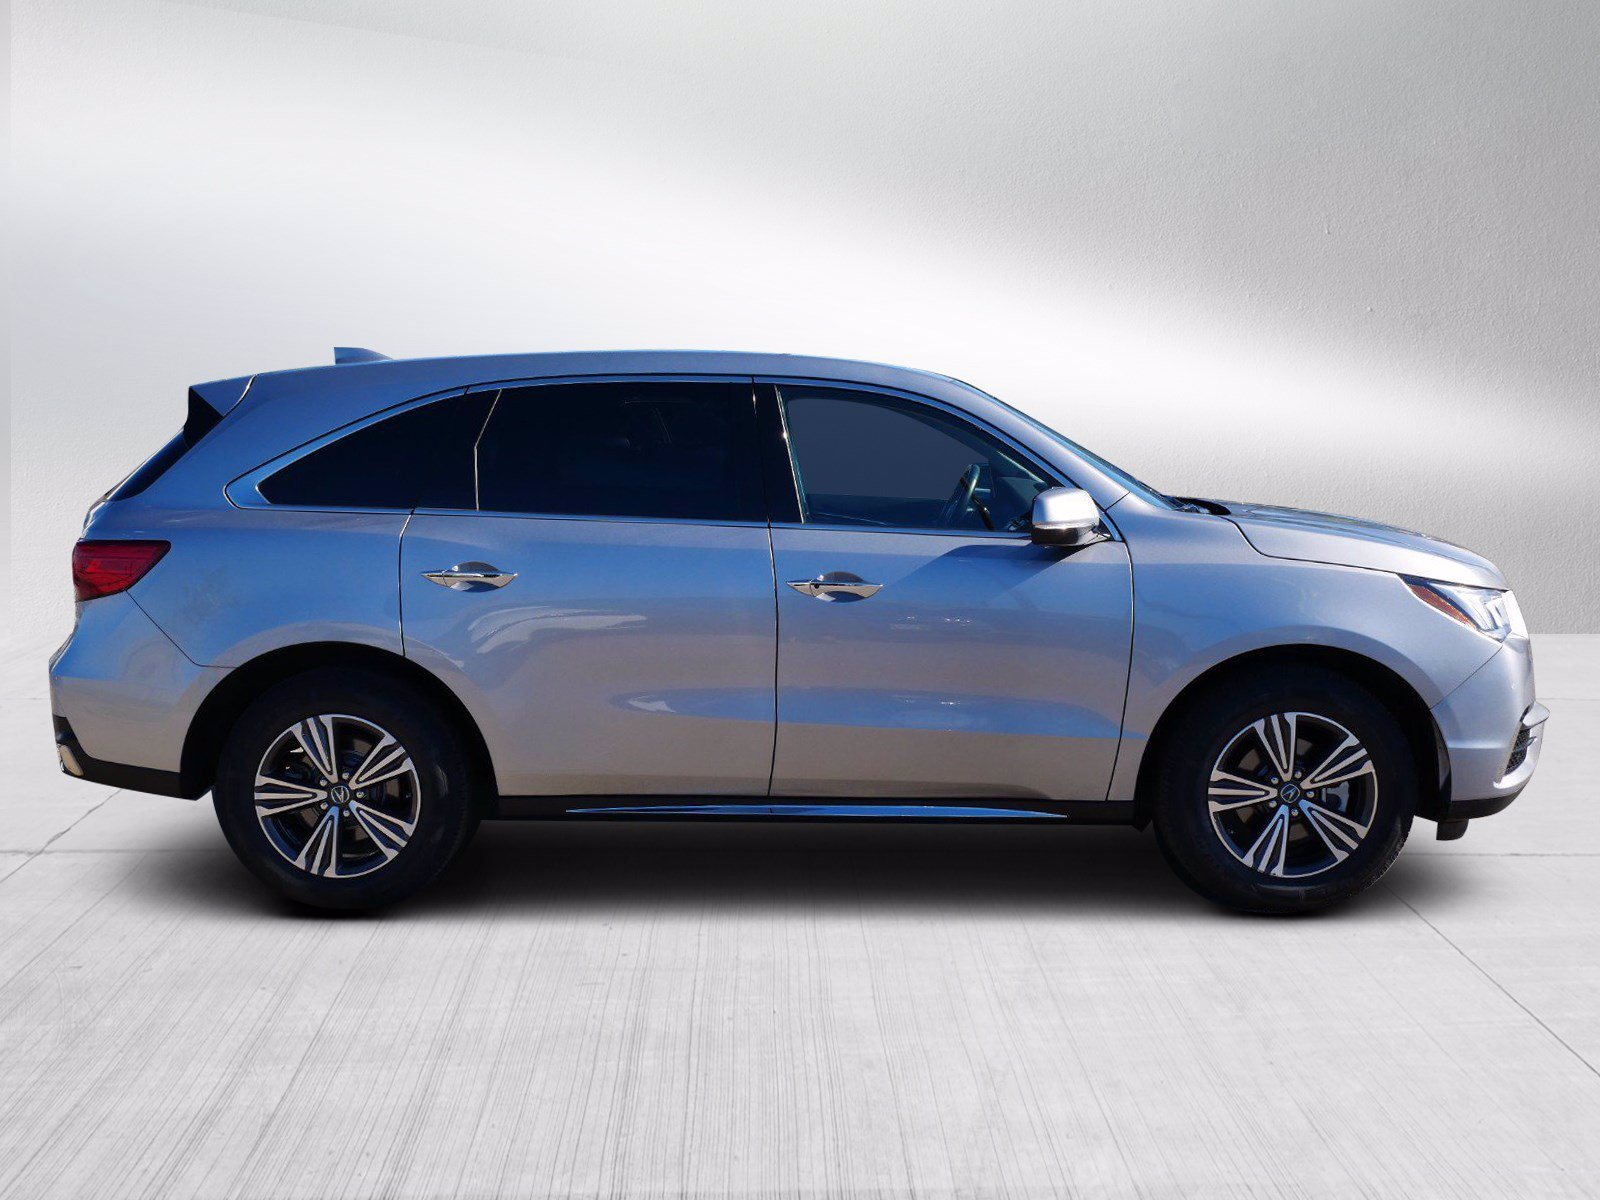 Used 2018 Acura MDX  with VIN 5J8YD4H35JL022624 for sale in Bloomington, Minnesota